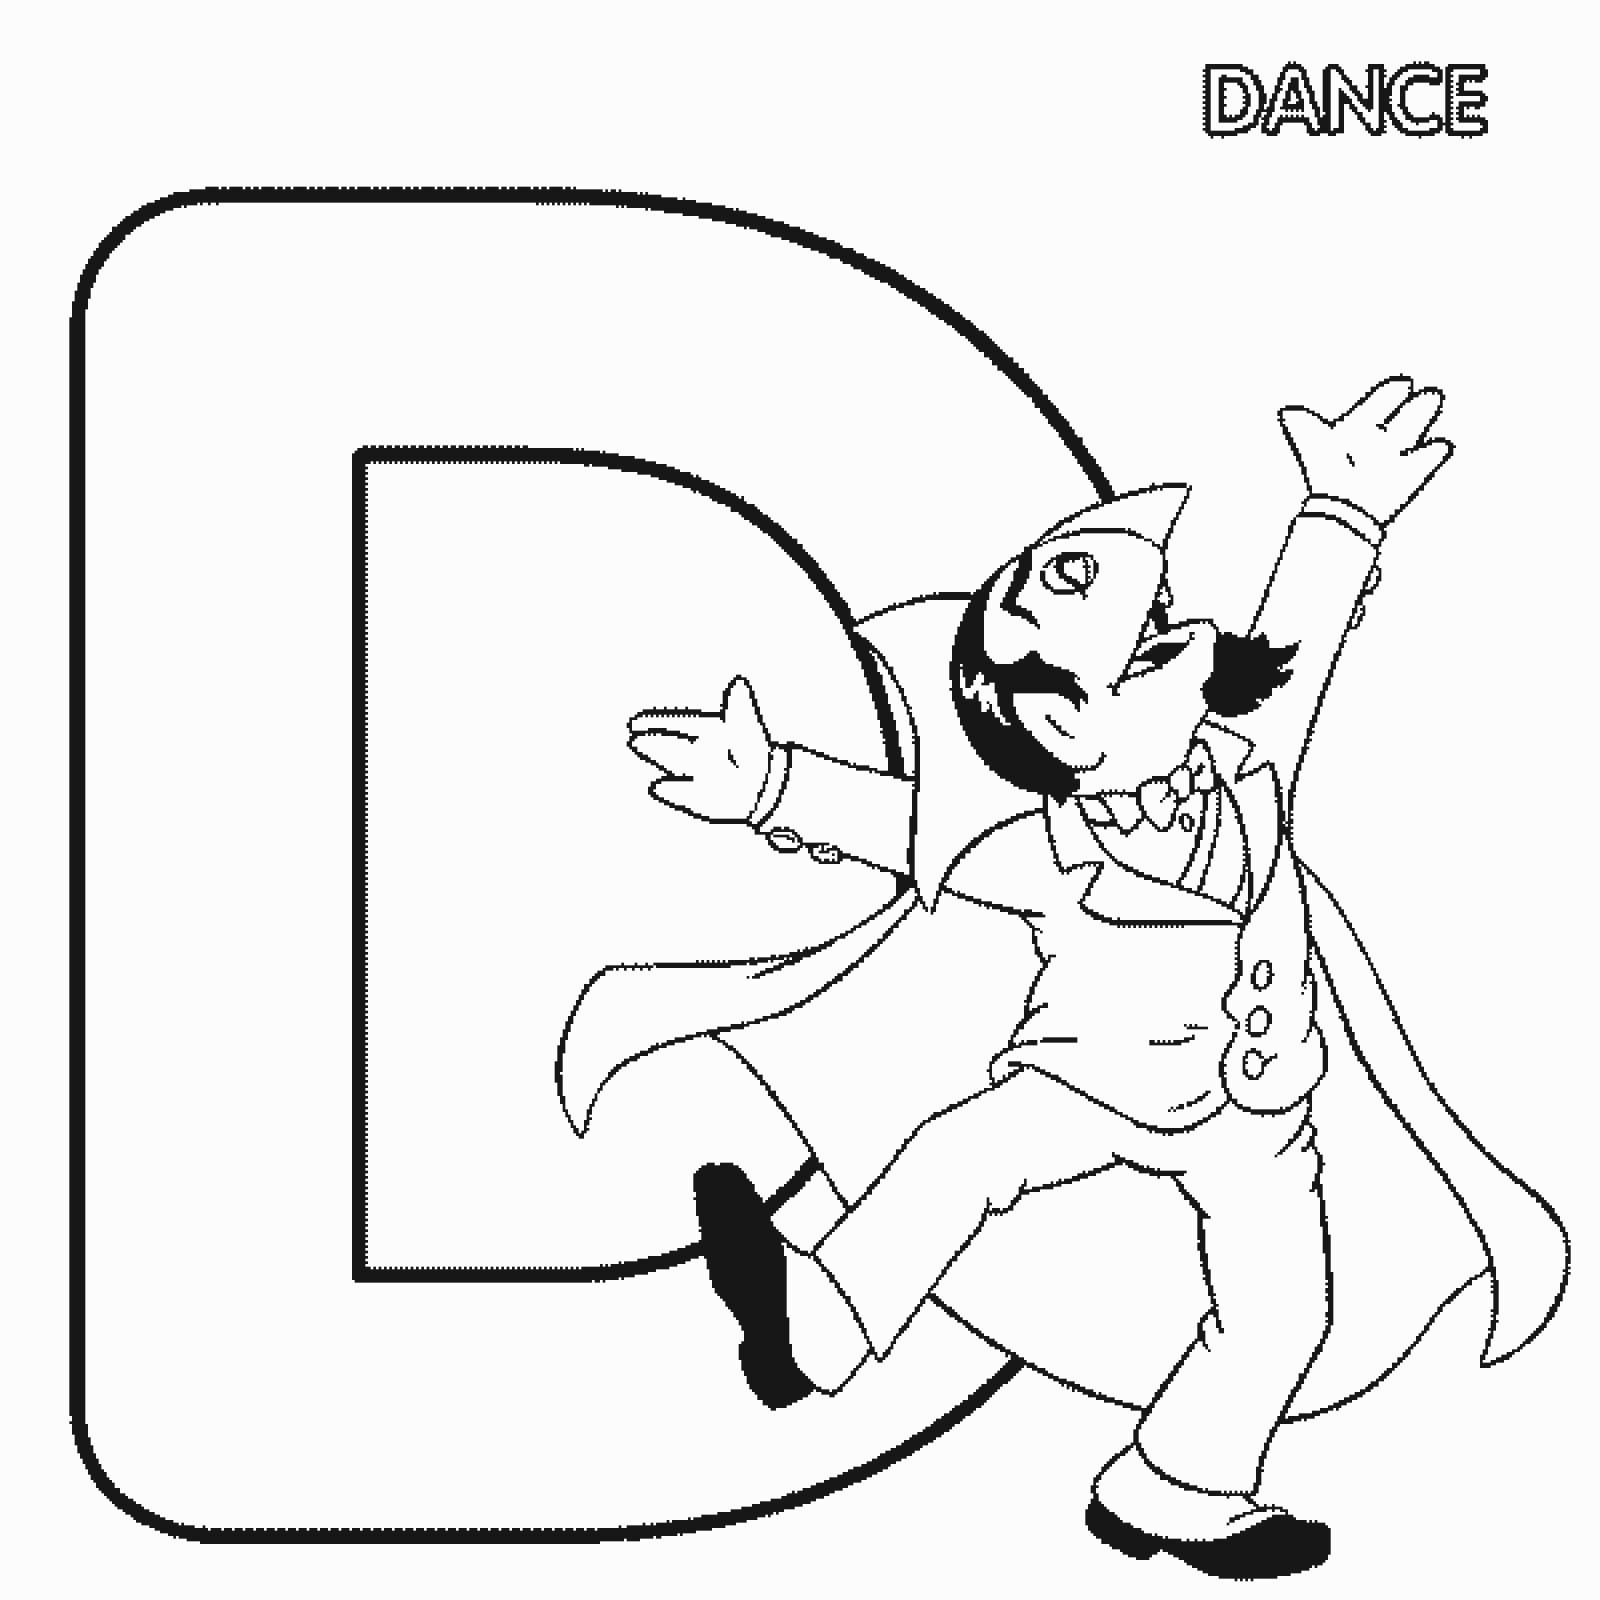 sesame street sign coloring page - sesame street count coloring pages coloring home